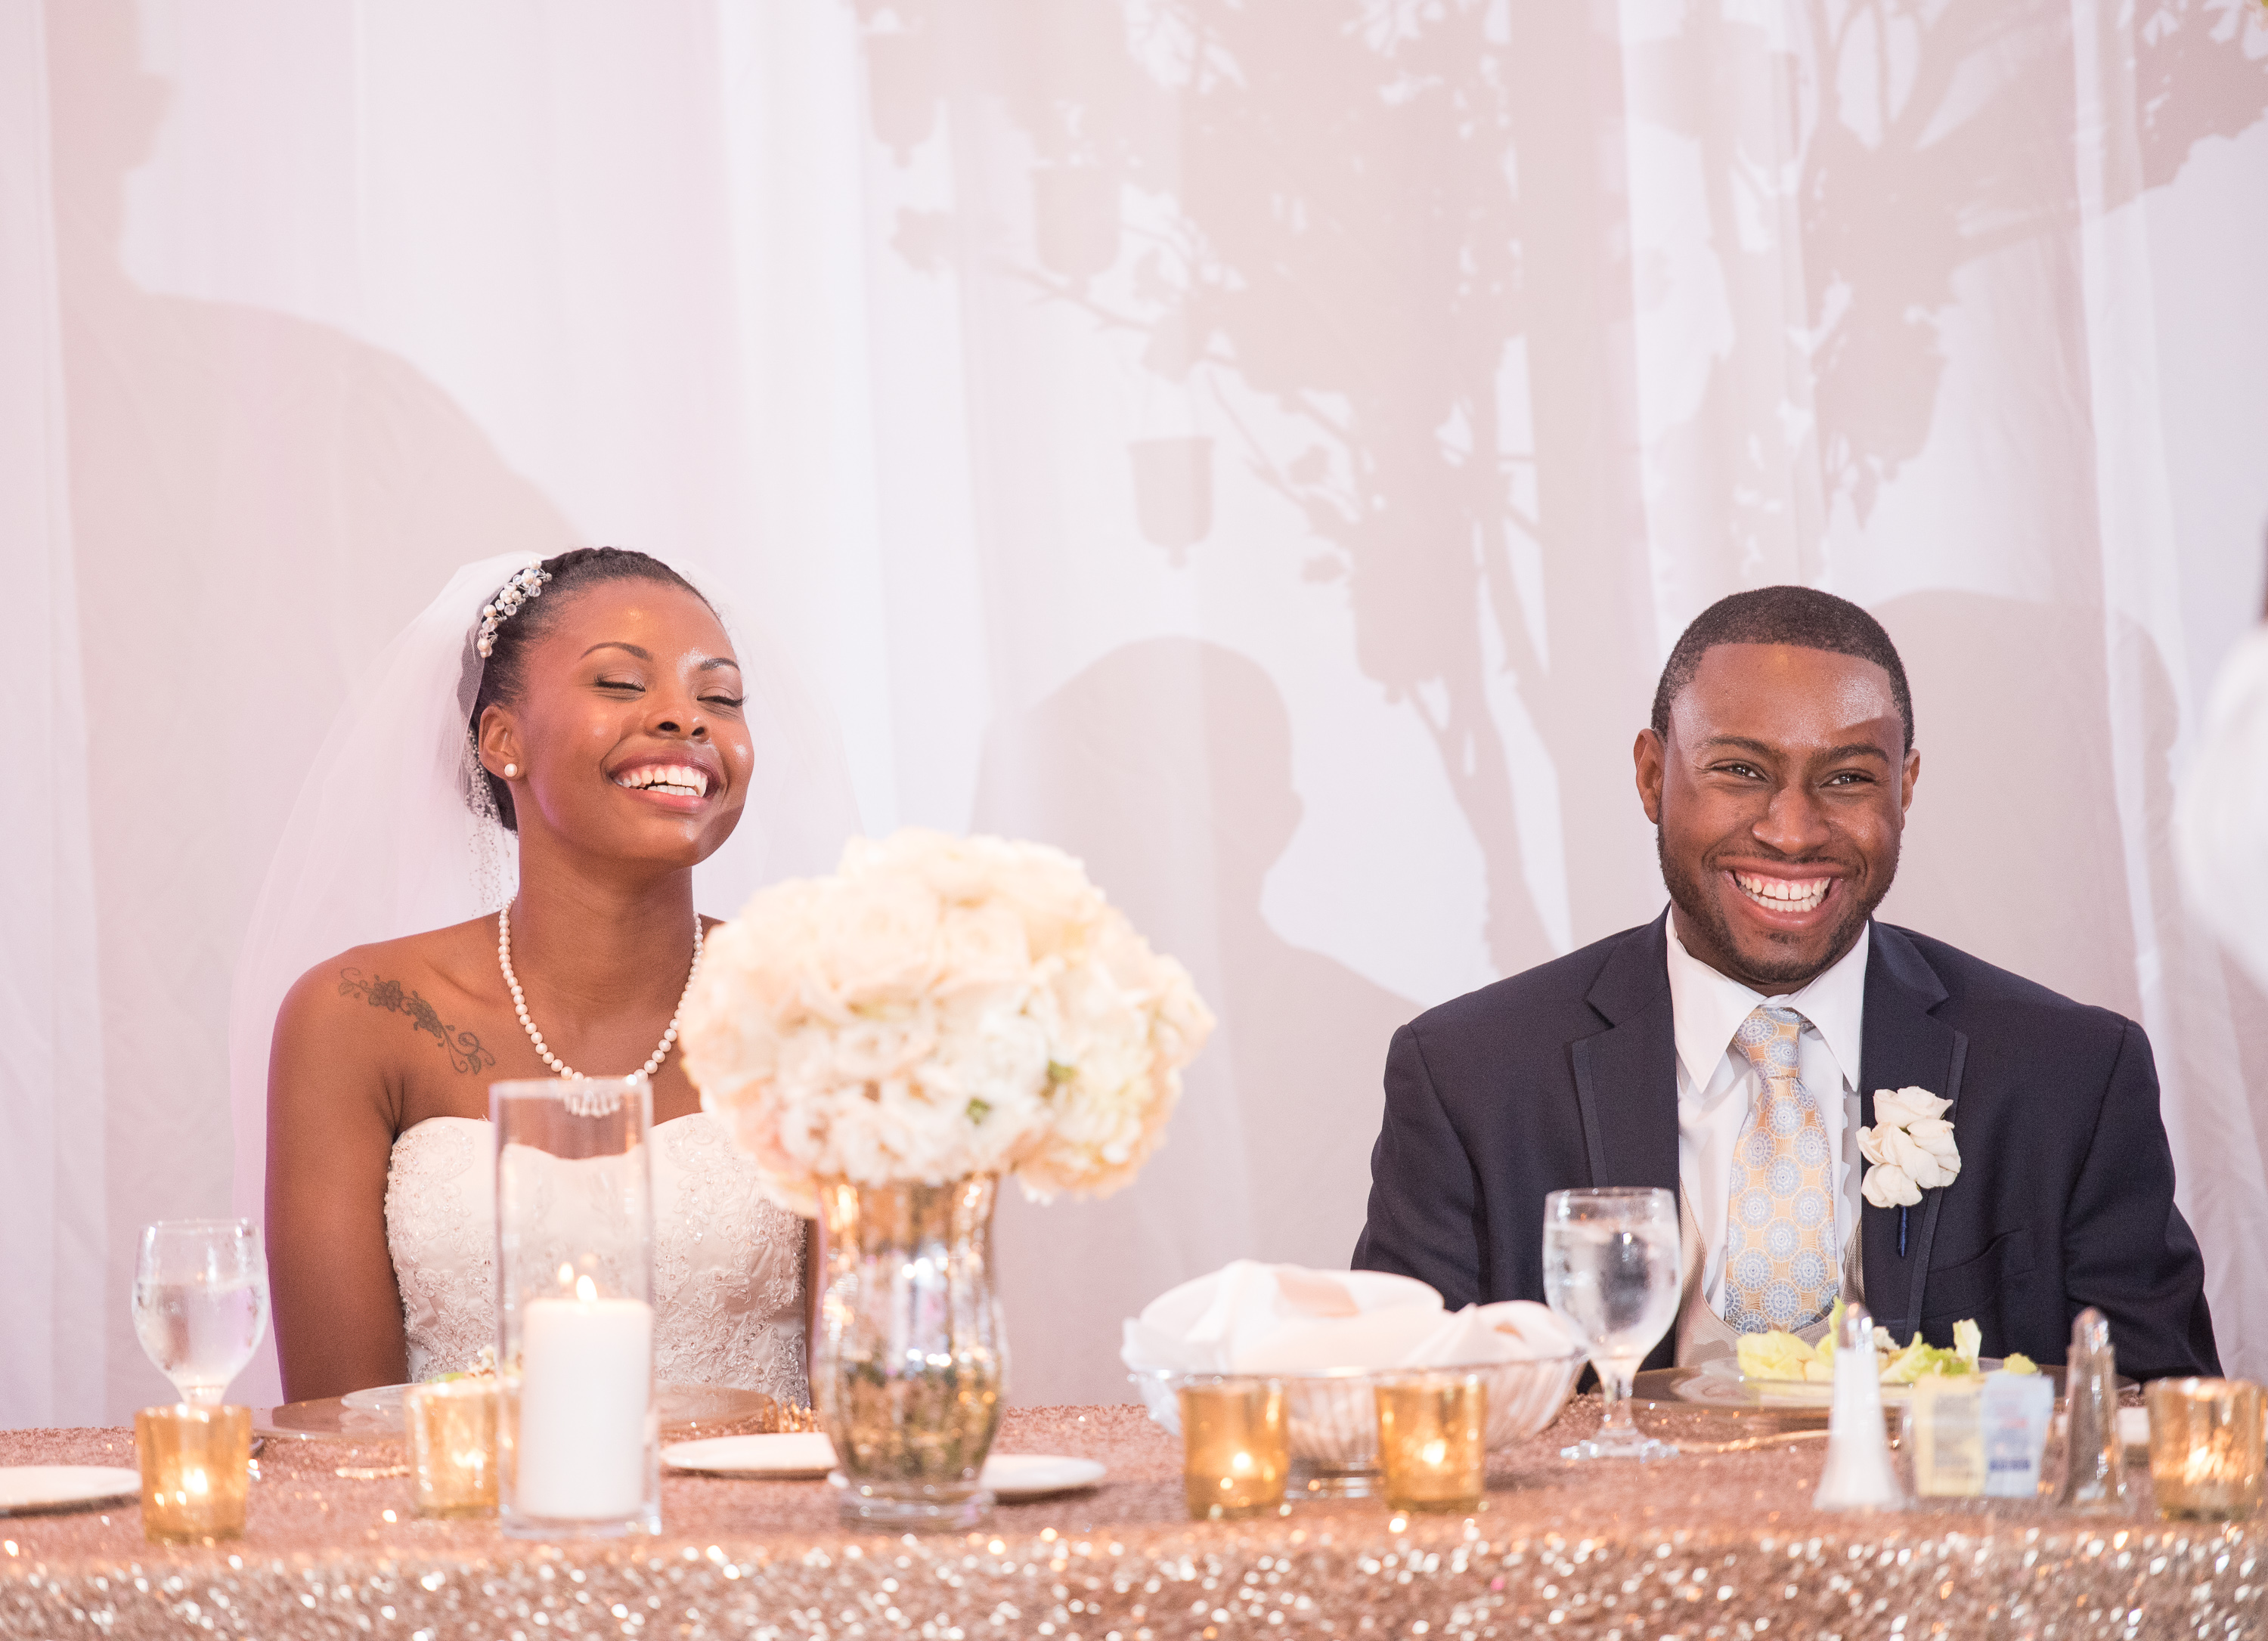 dallas-jewish-wedding-donnell-perry-photo-18